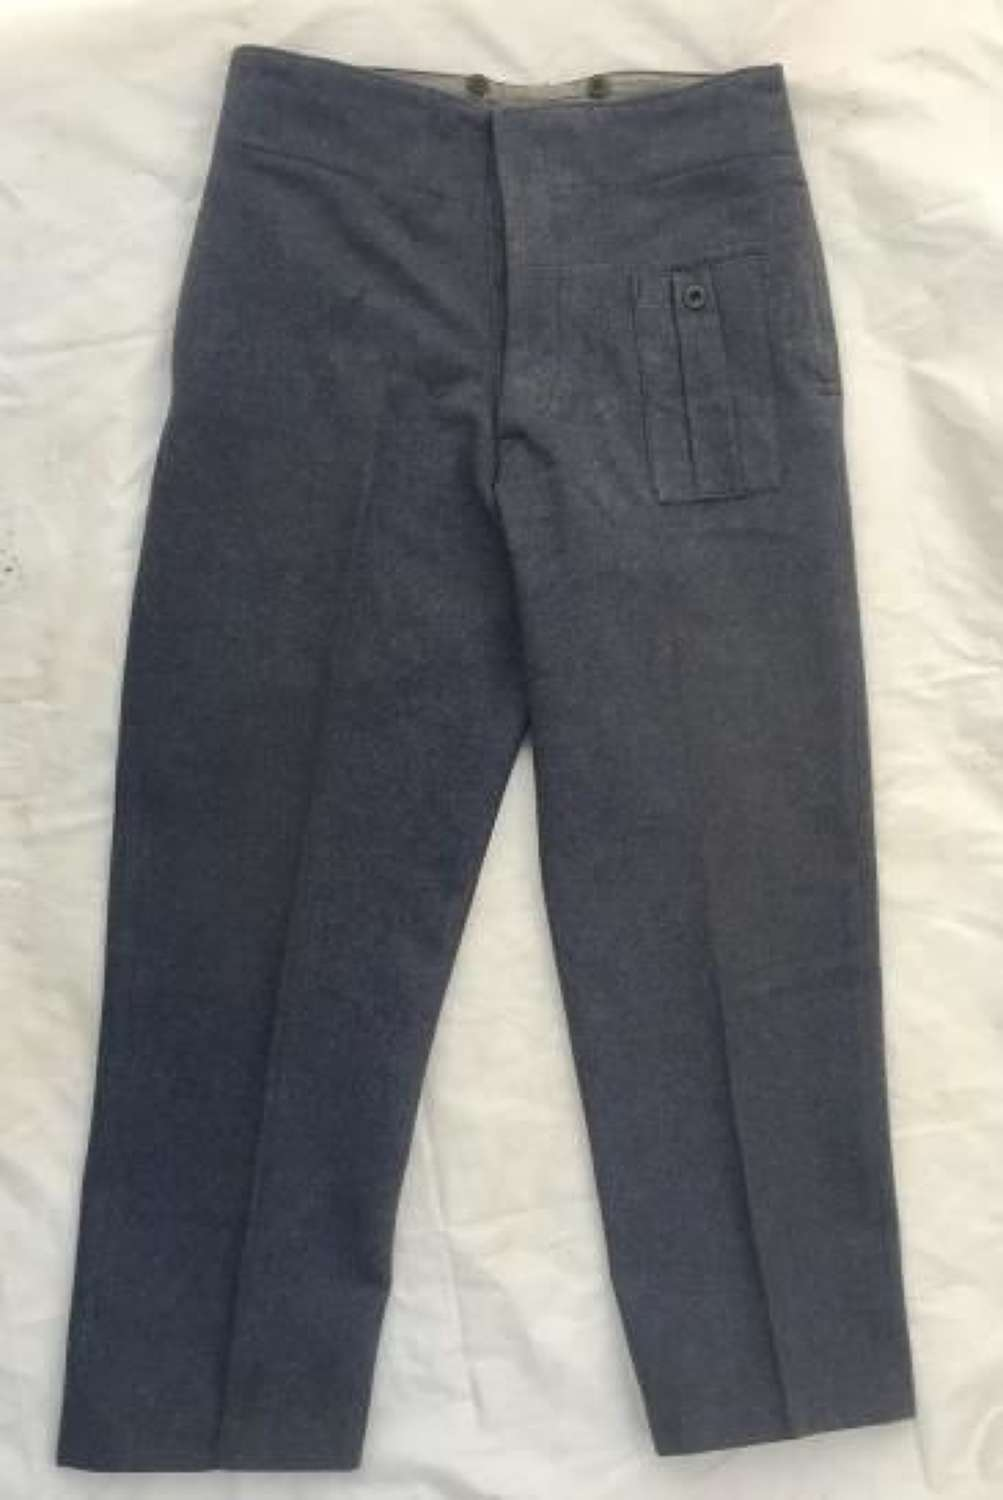 1943 Dated RAF 'Suits Aircrew' Trousers